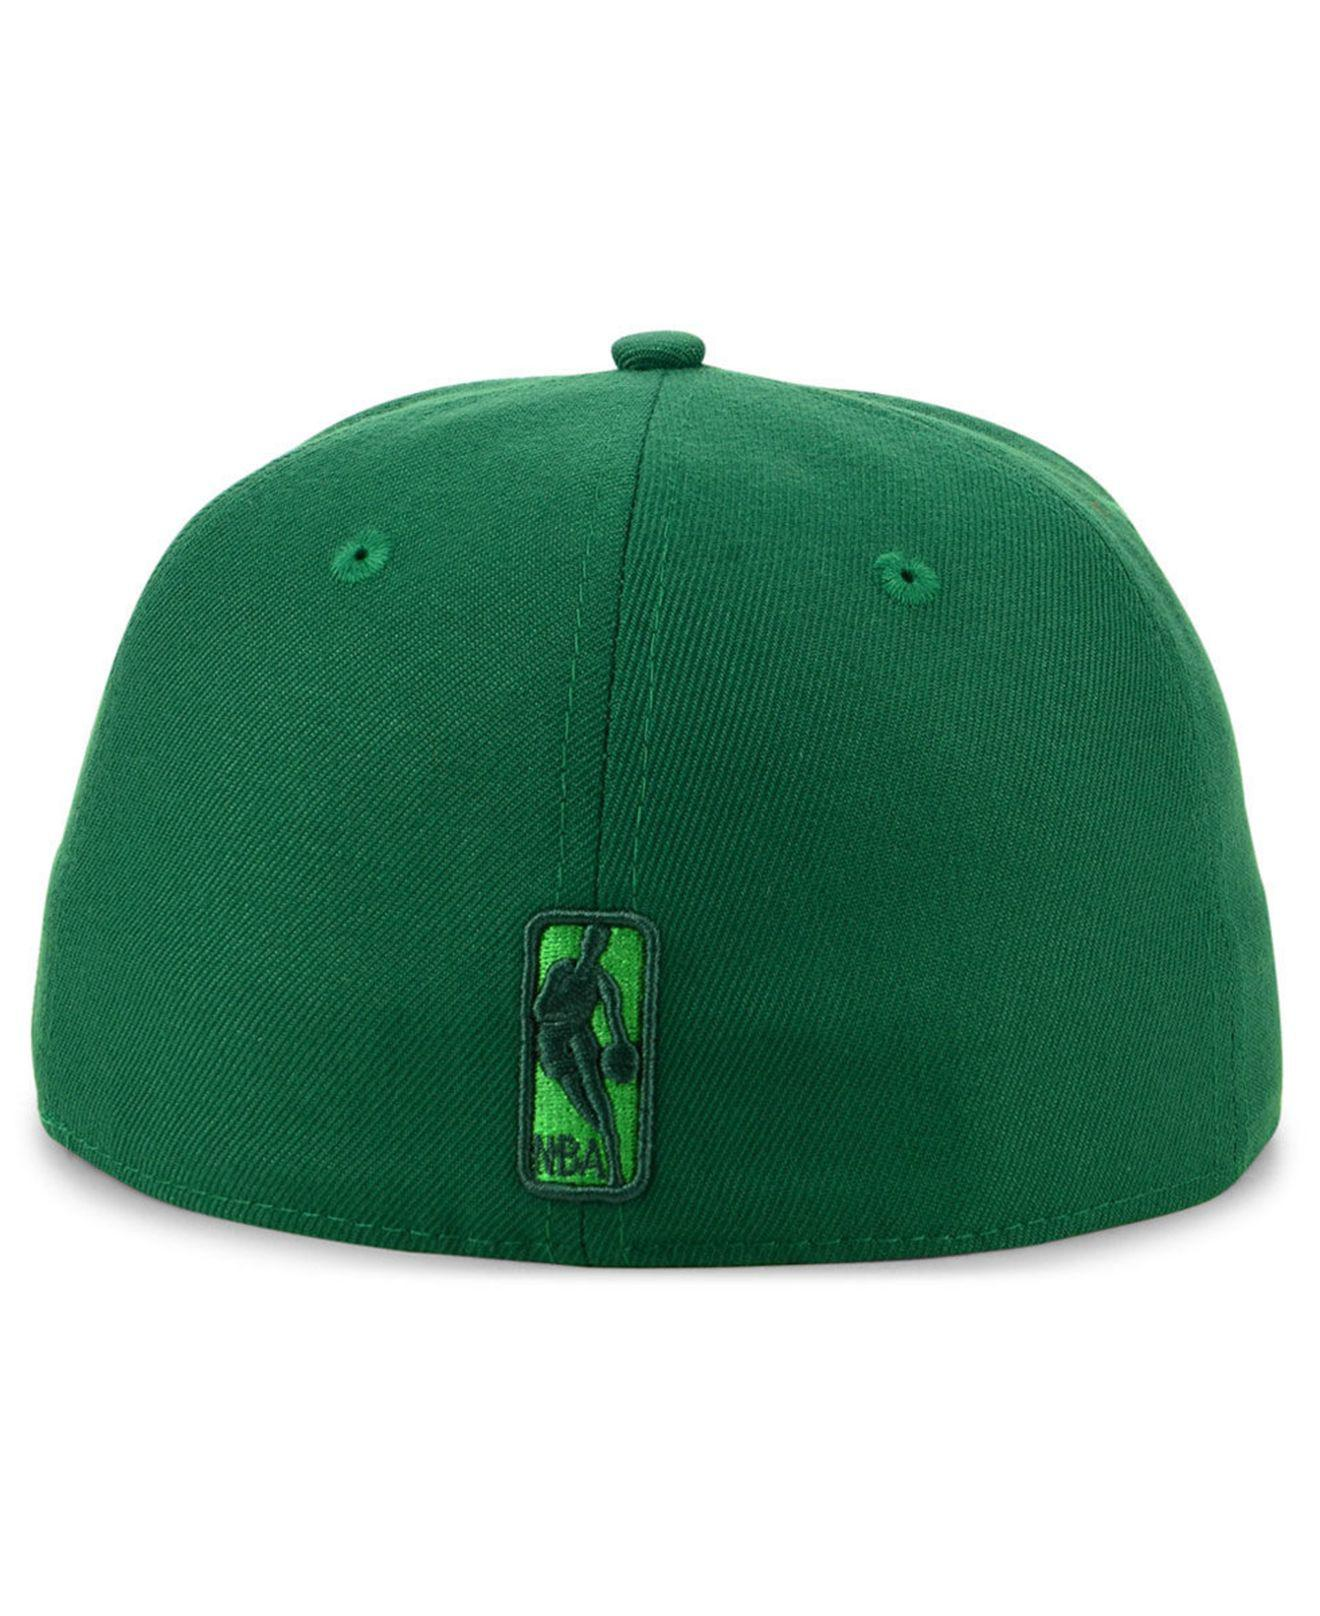 buy online 62525 87baa ... new era graphite silver nba draft 59fifty fitted hat ca7a2 b5a14  czech  germany ktz green los angeles lakers color prism pack 59fifty fitted cap  for men ...